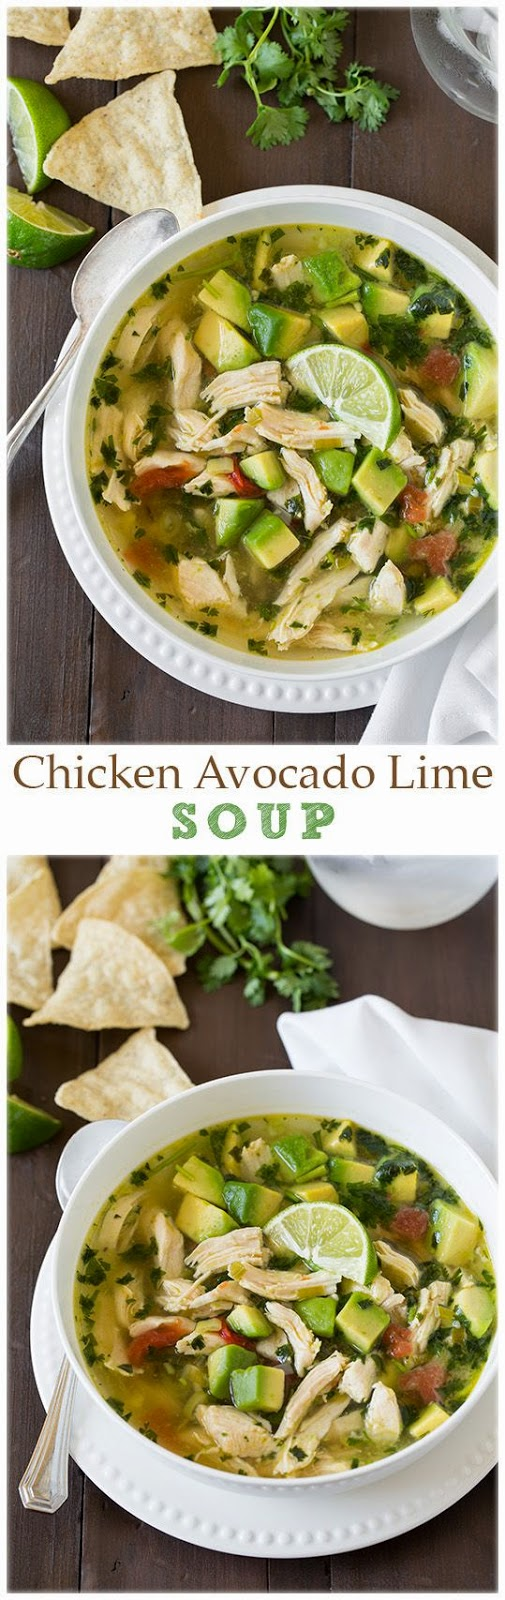 Chicken Avocado Lime Soup | Food drink